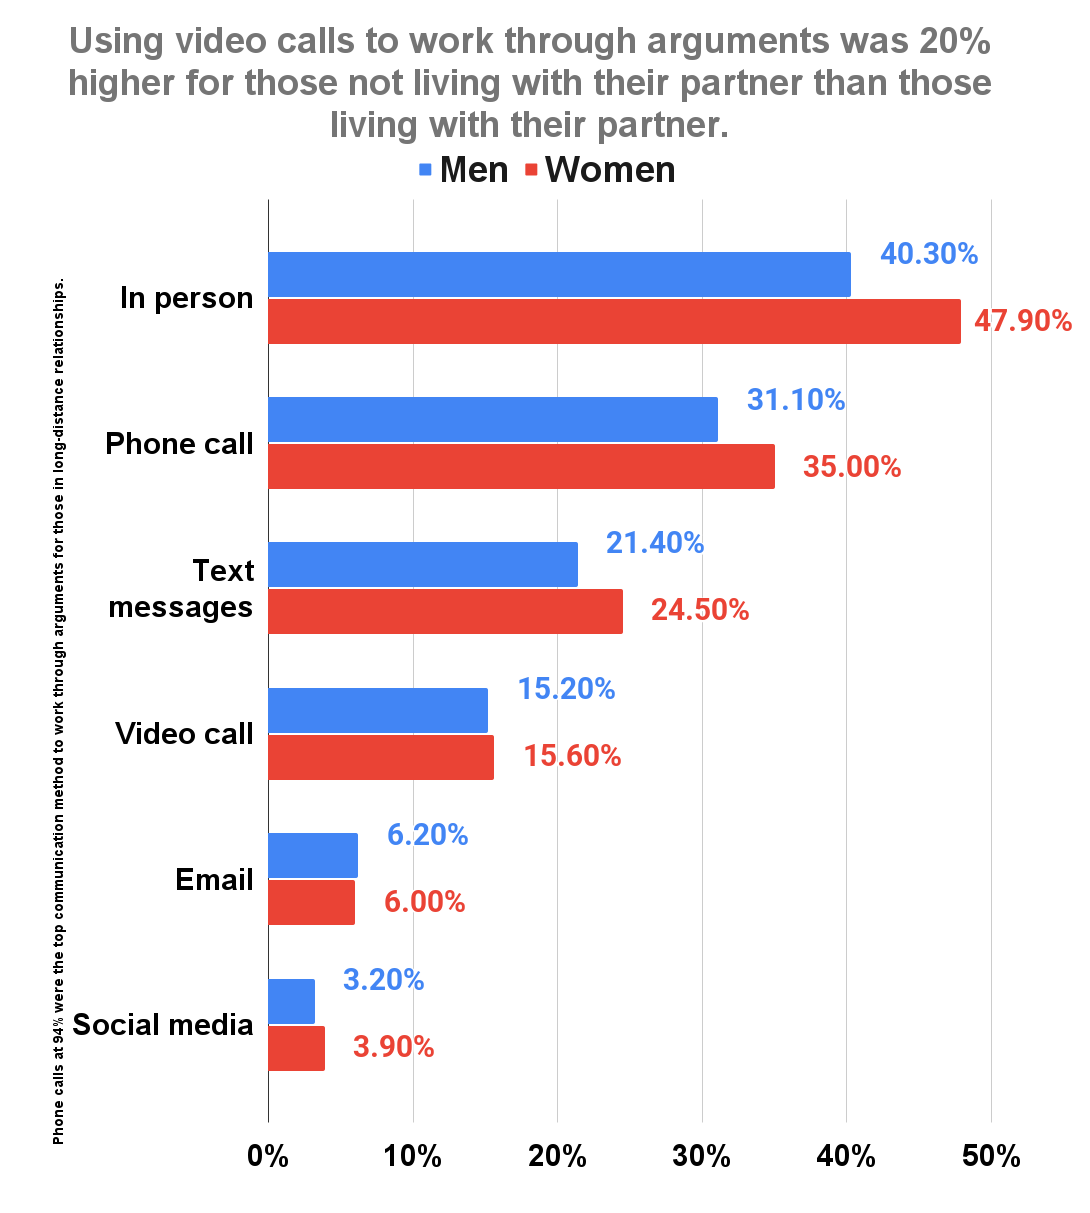 Using video calls to work through arguments was 20% higher for those not living with their partner than those living with their partner m